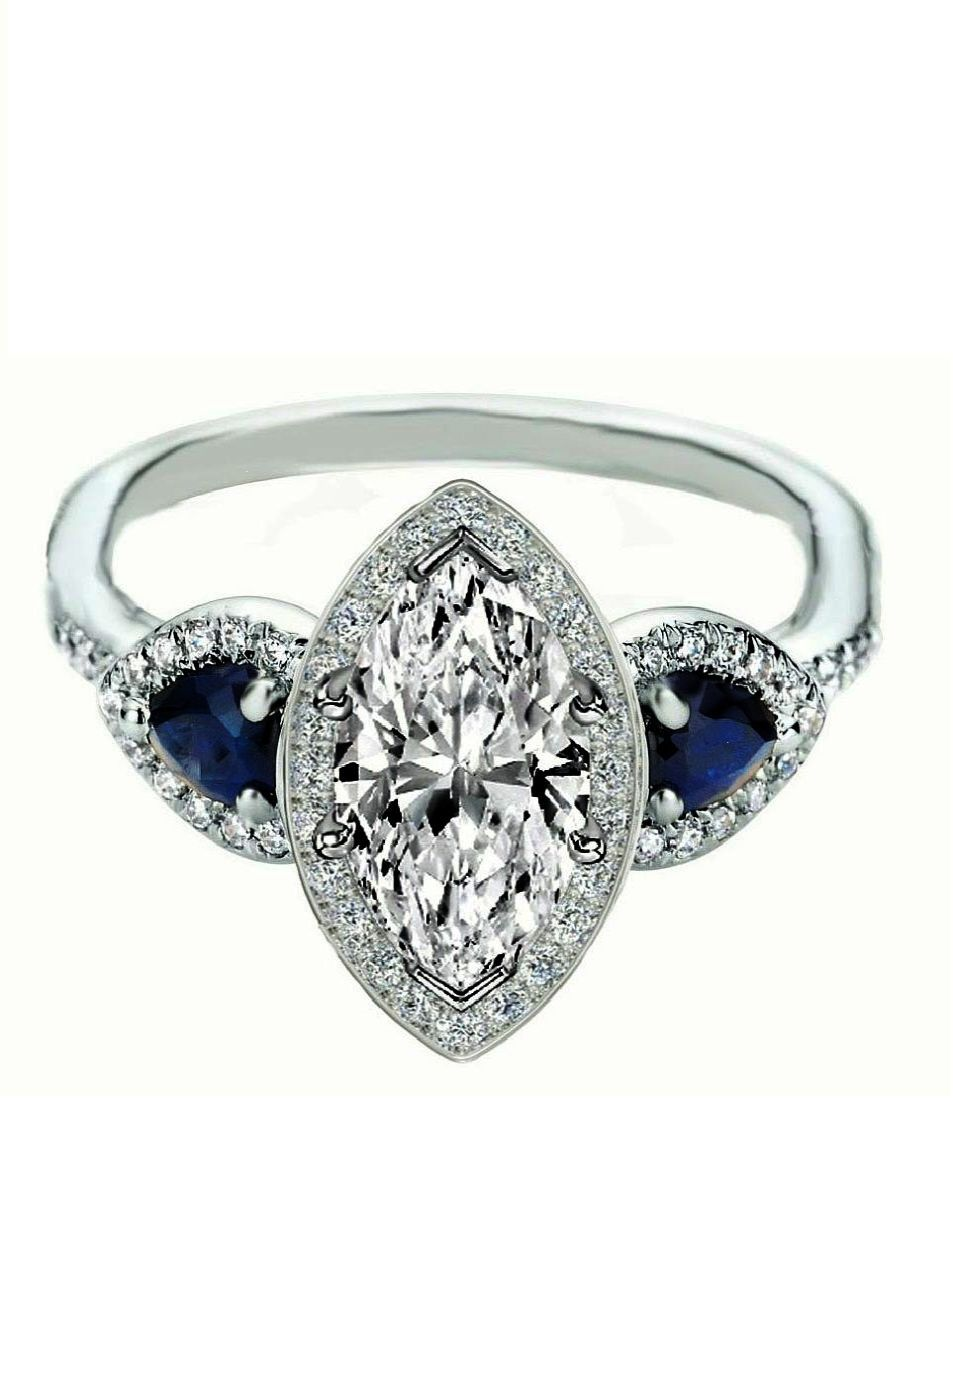 Marquise diamond halo engagement ring pear shape blue sapphire side